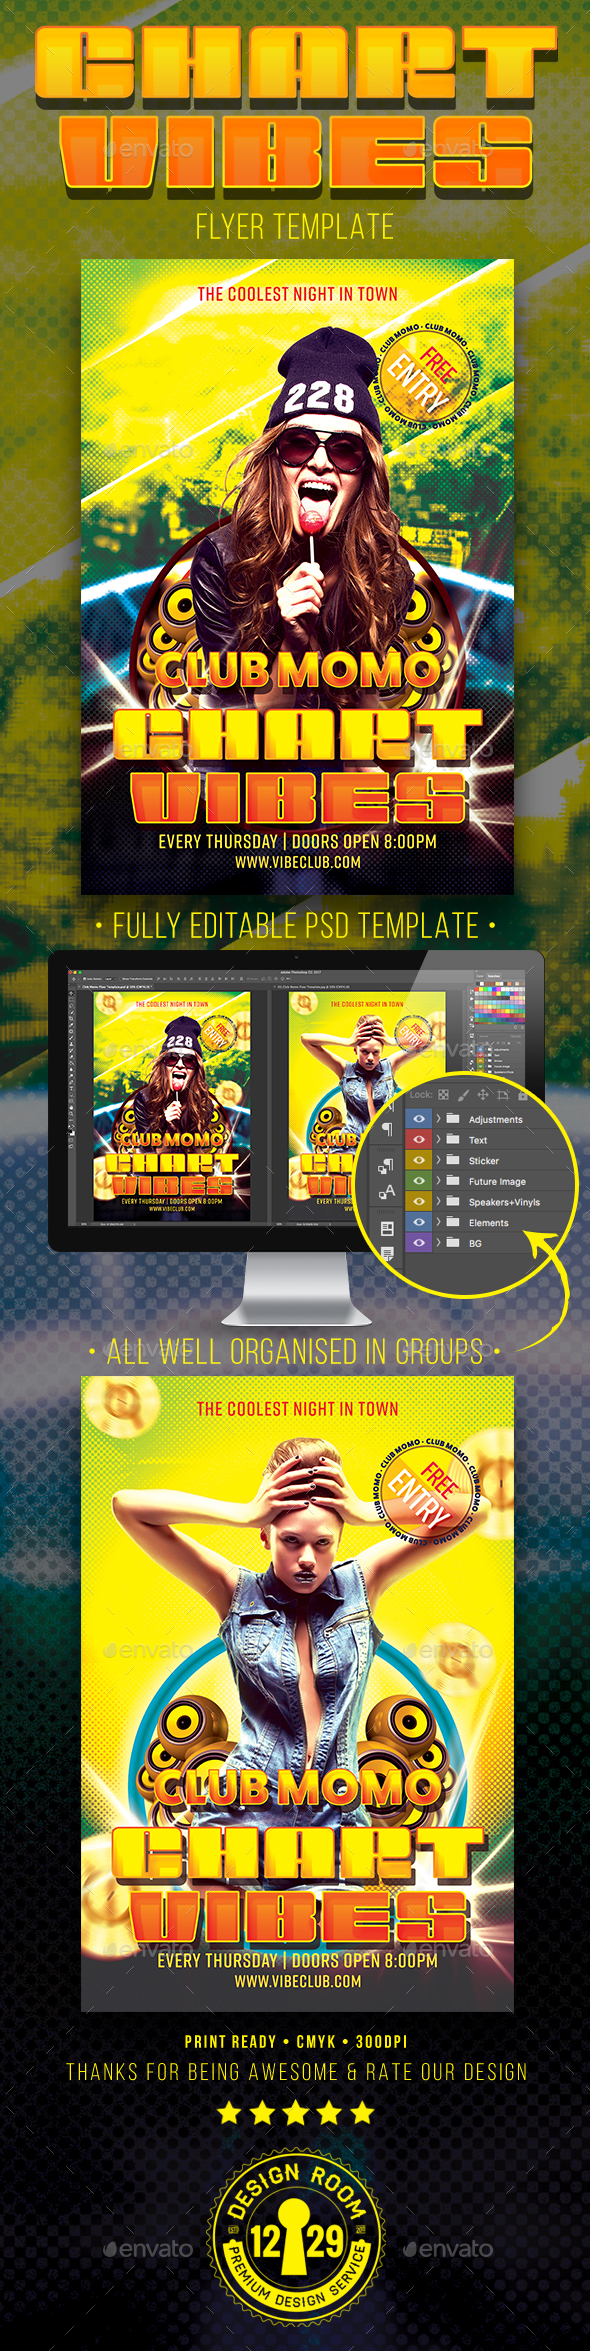 Club Momo Chart Vibes Flyer Template - Clubs & Parties Events